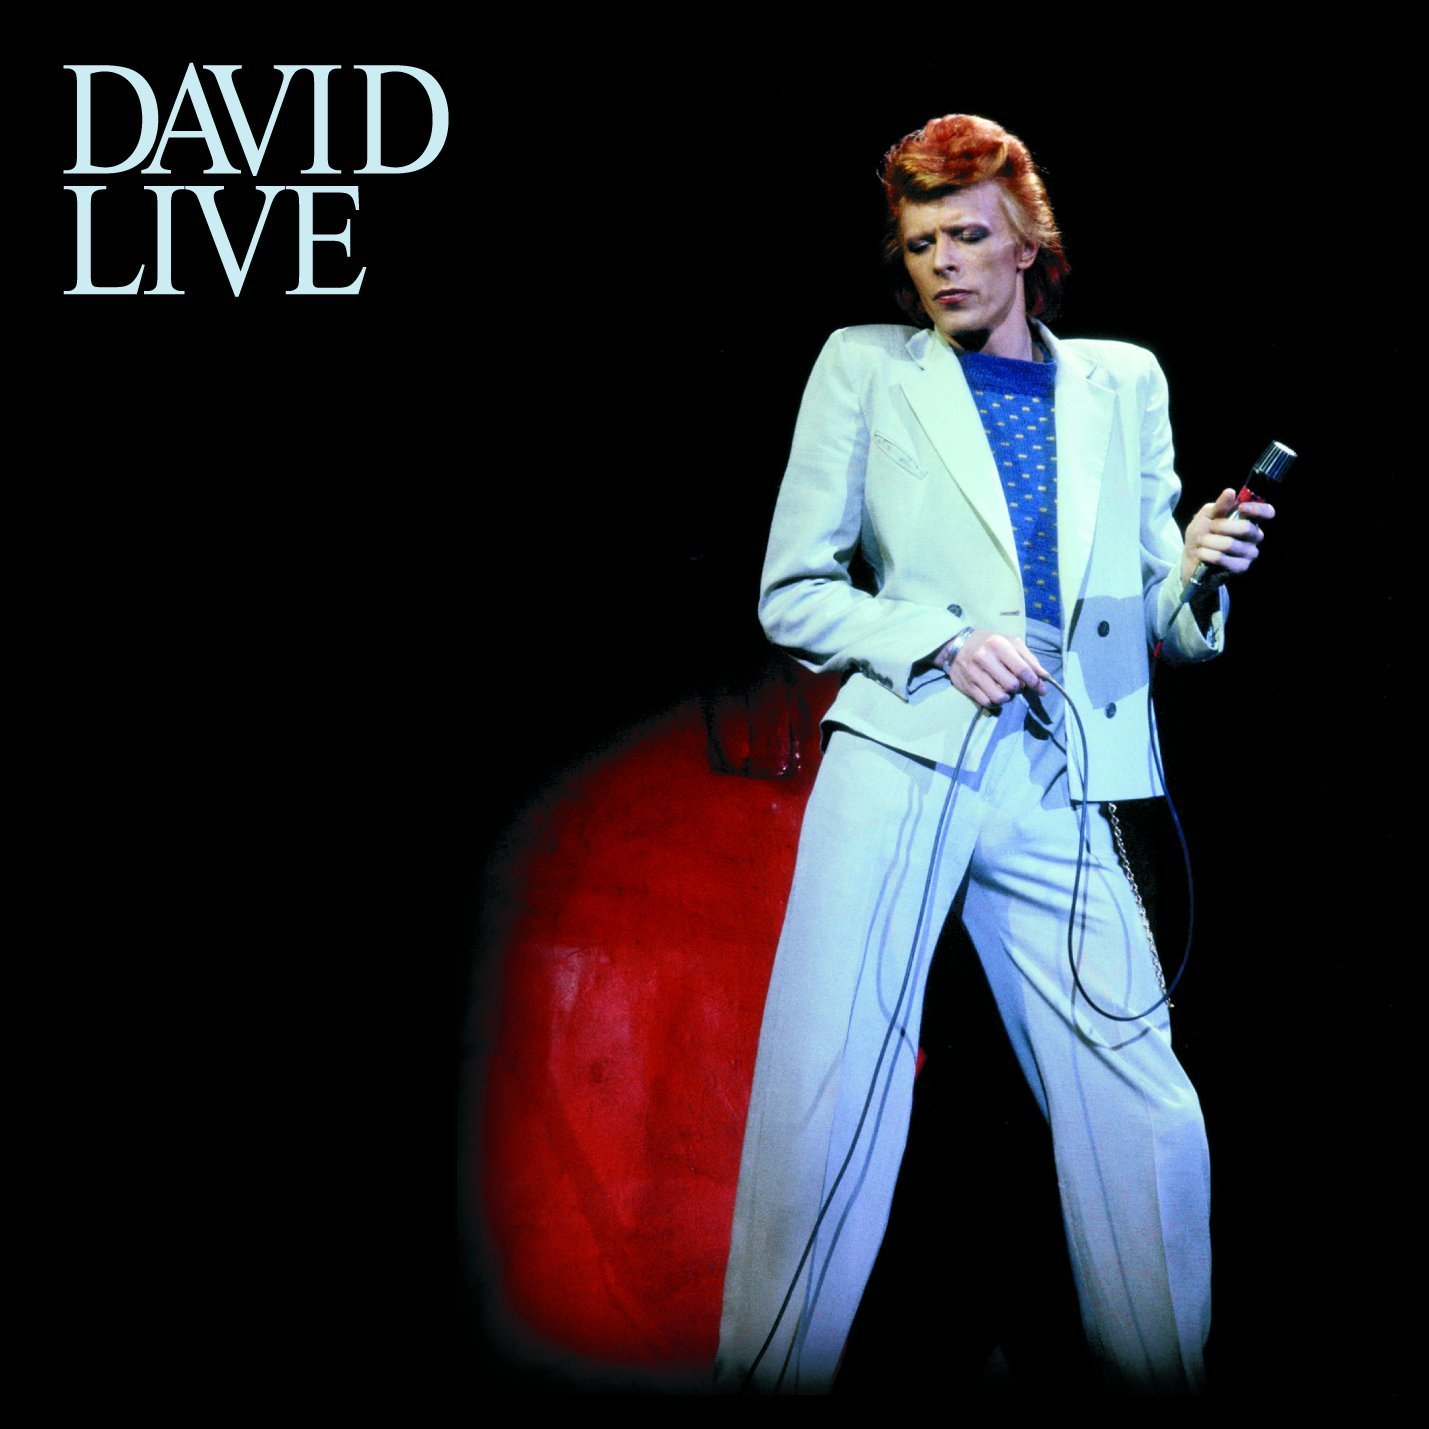 The Essential David Bowie - Part one of our Collector's Guide